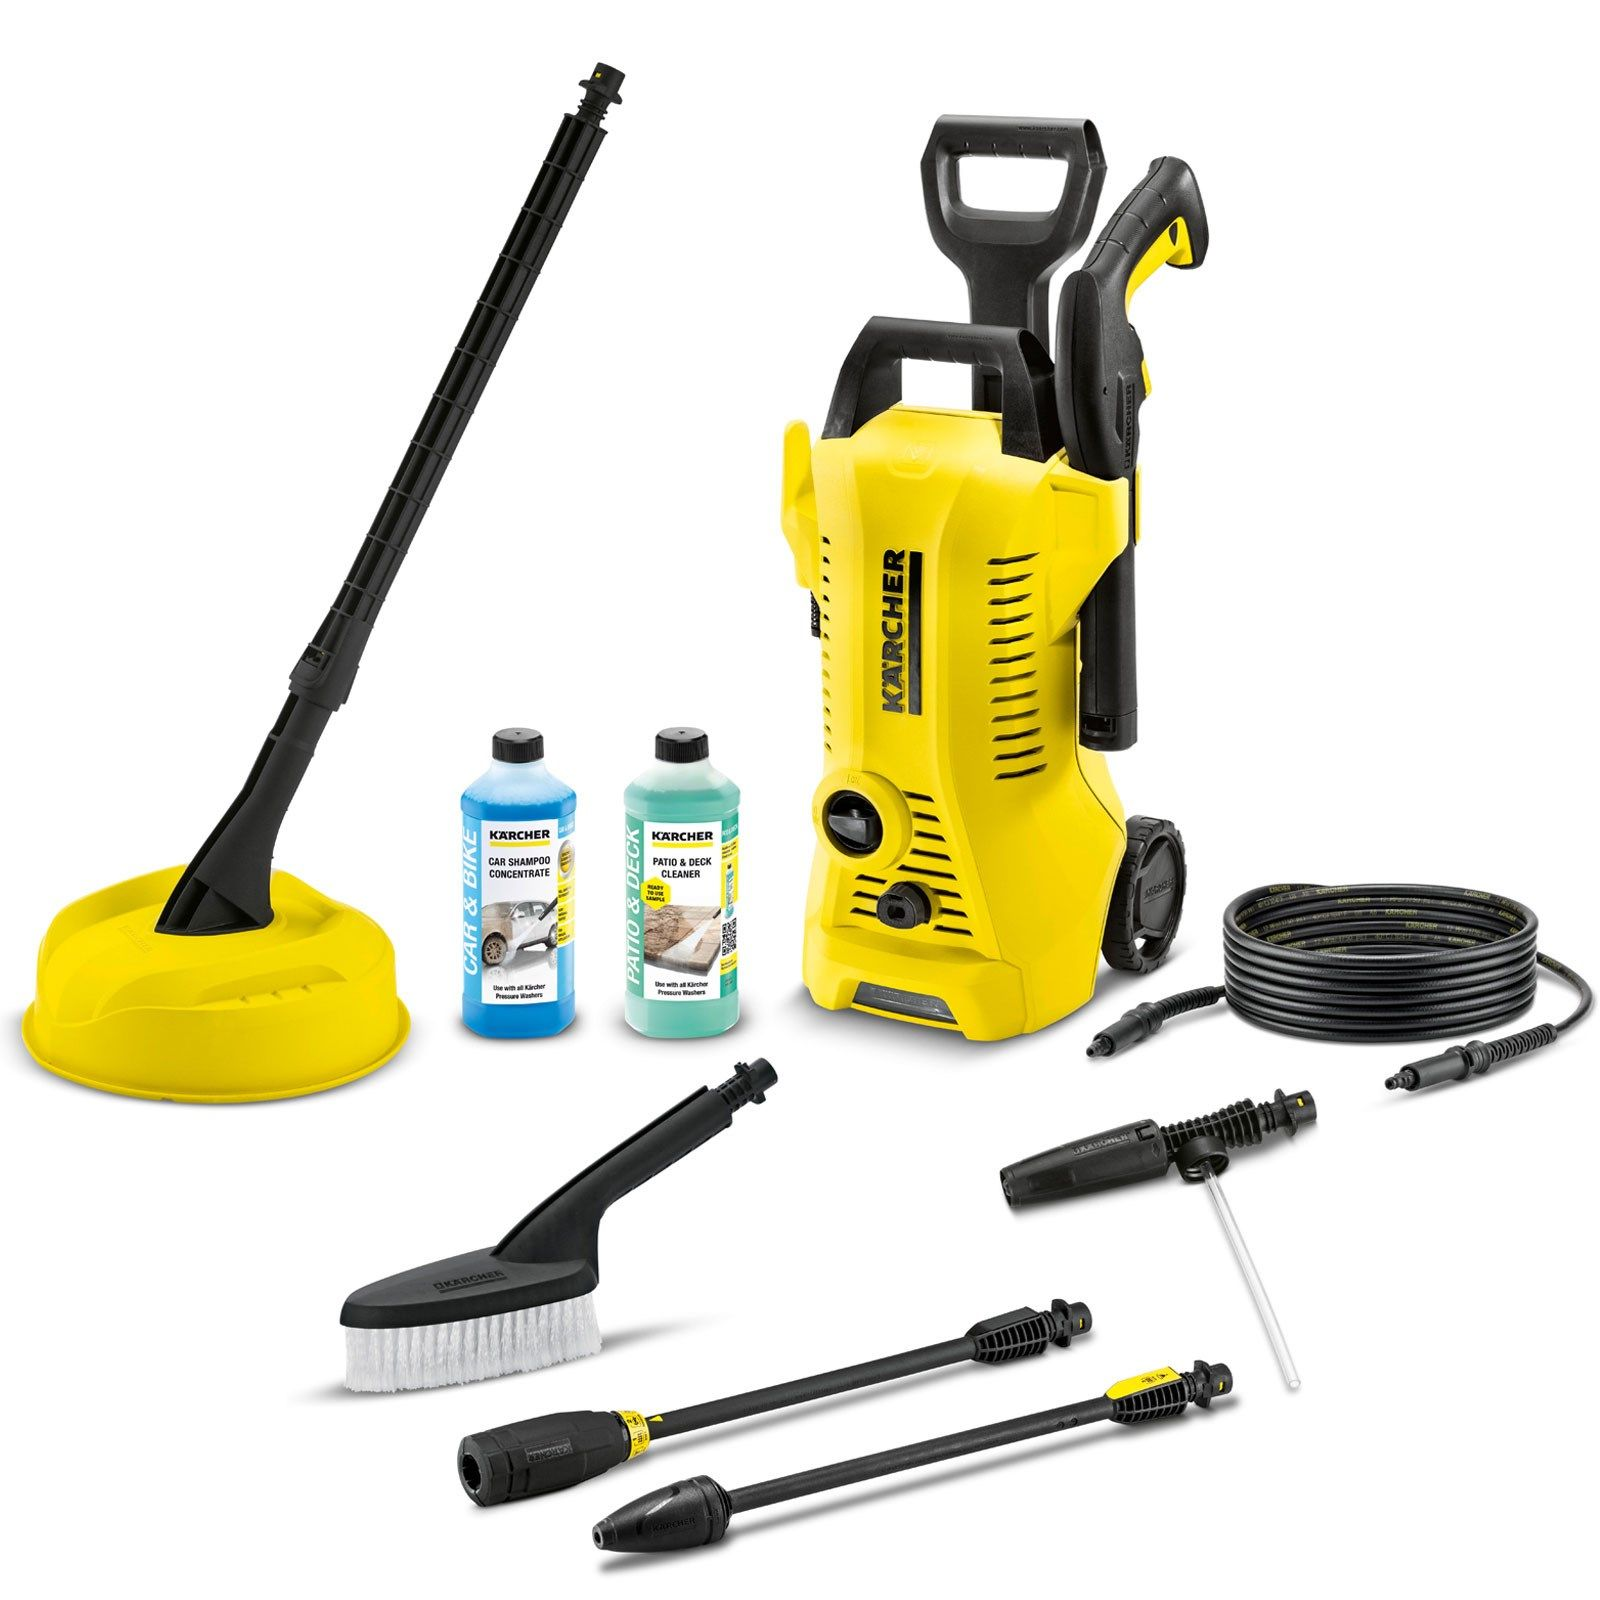 The K2 Premium Full Control Home Pressure Washer is the